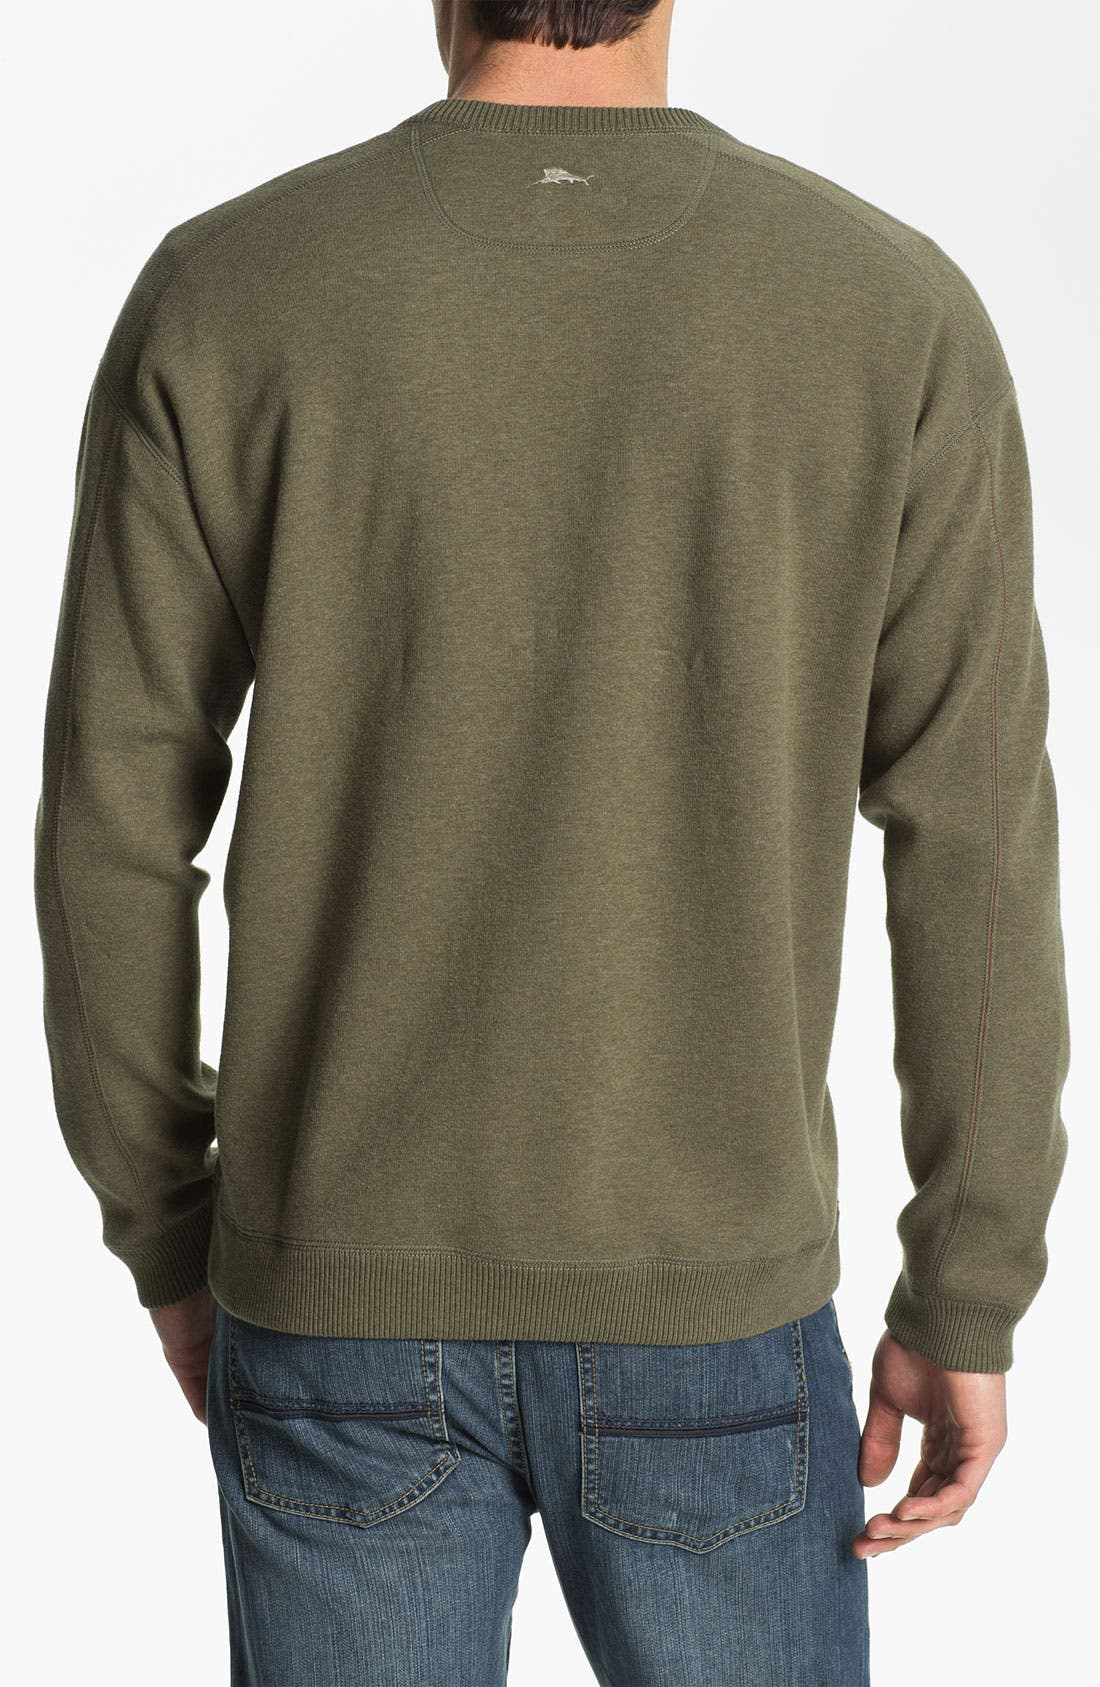 Alternate Image 4  - Tommy Bahama 'Flip Side Pro' Fleece V-Neck Sweatshirt (Big & Tall)